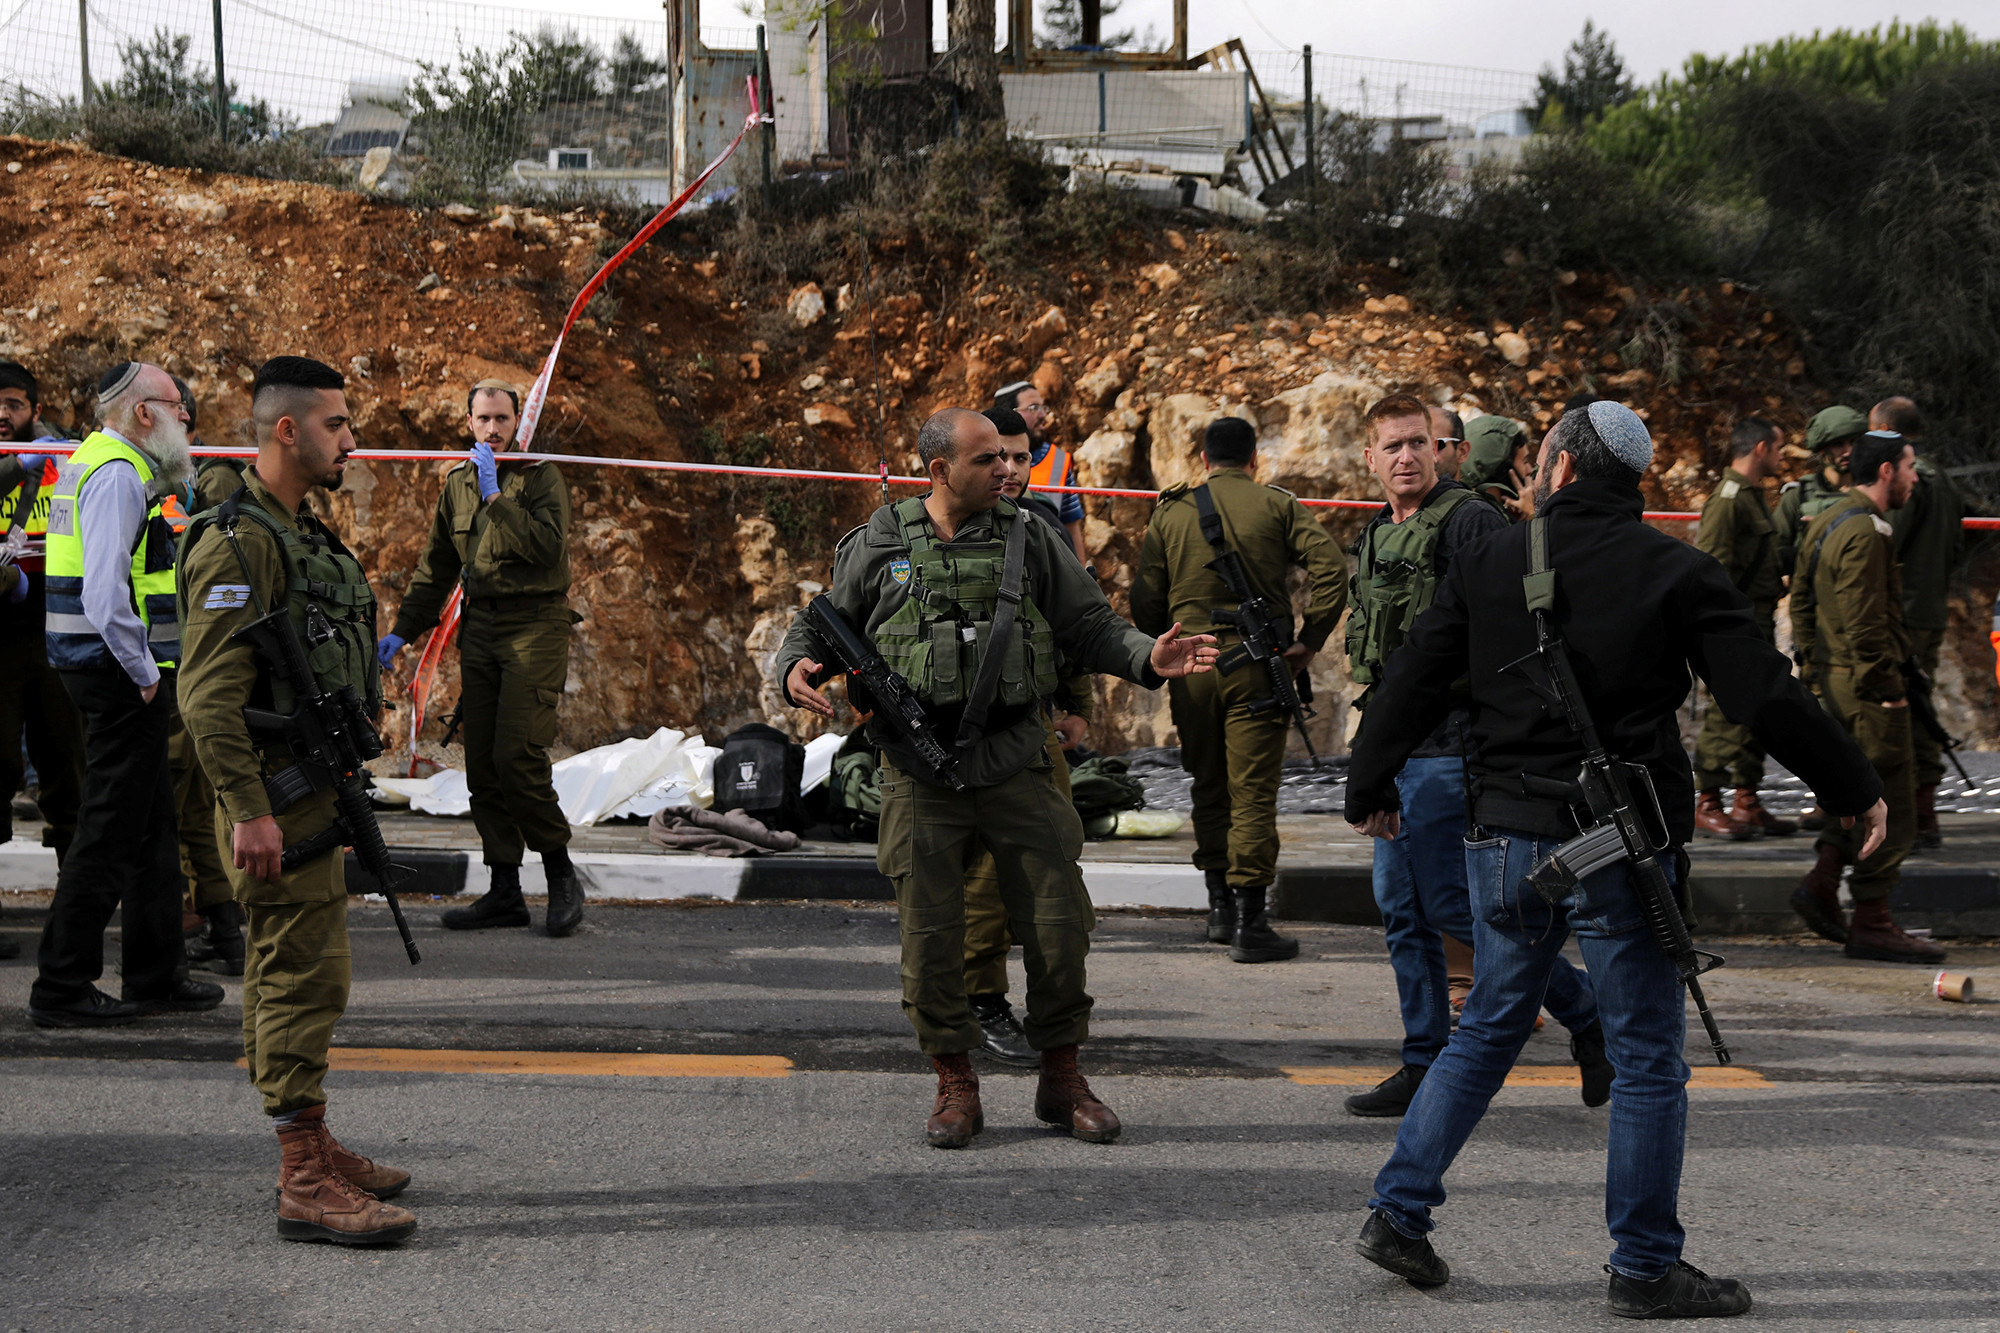 Palestinian wanted for killing two Israelis outside West Bank settlement